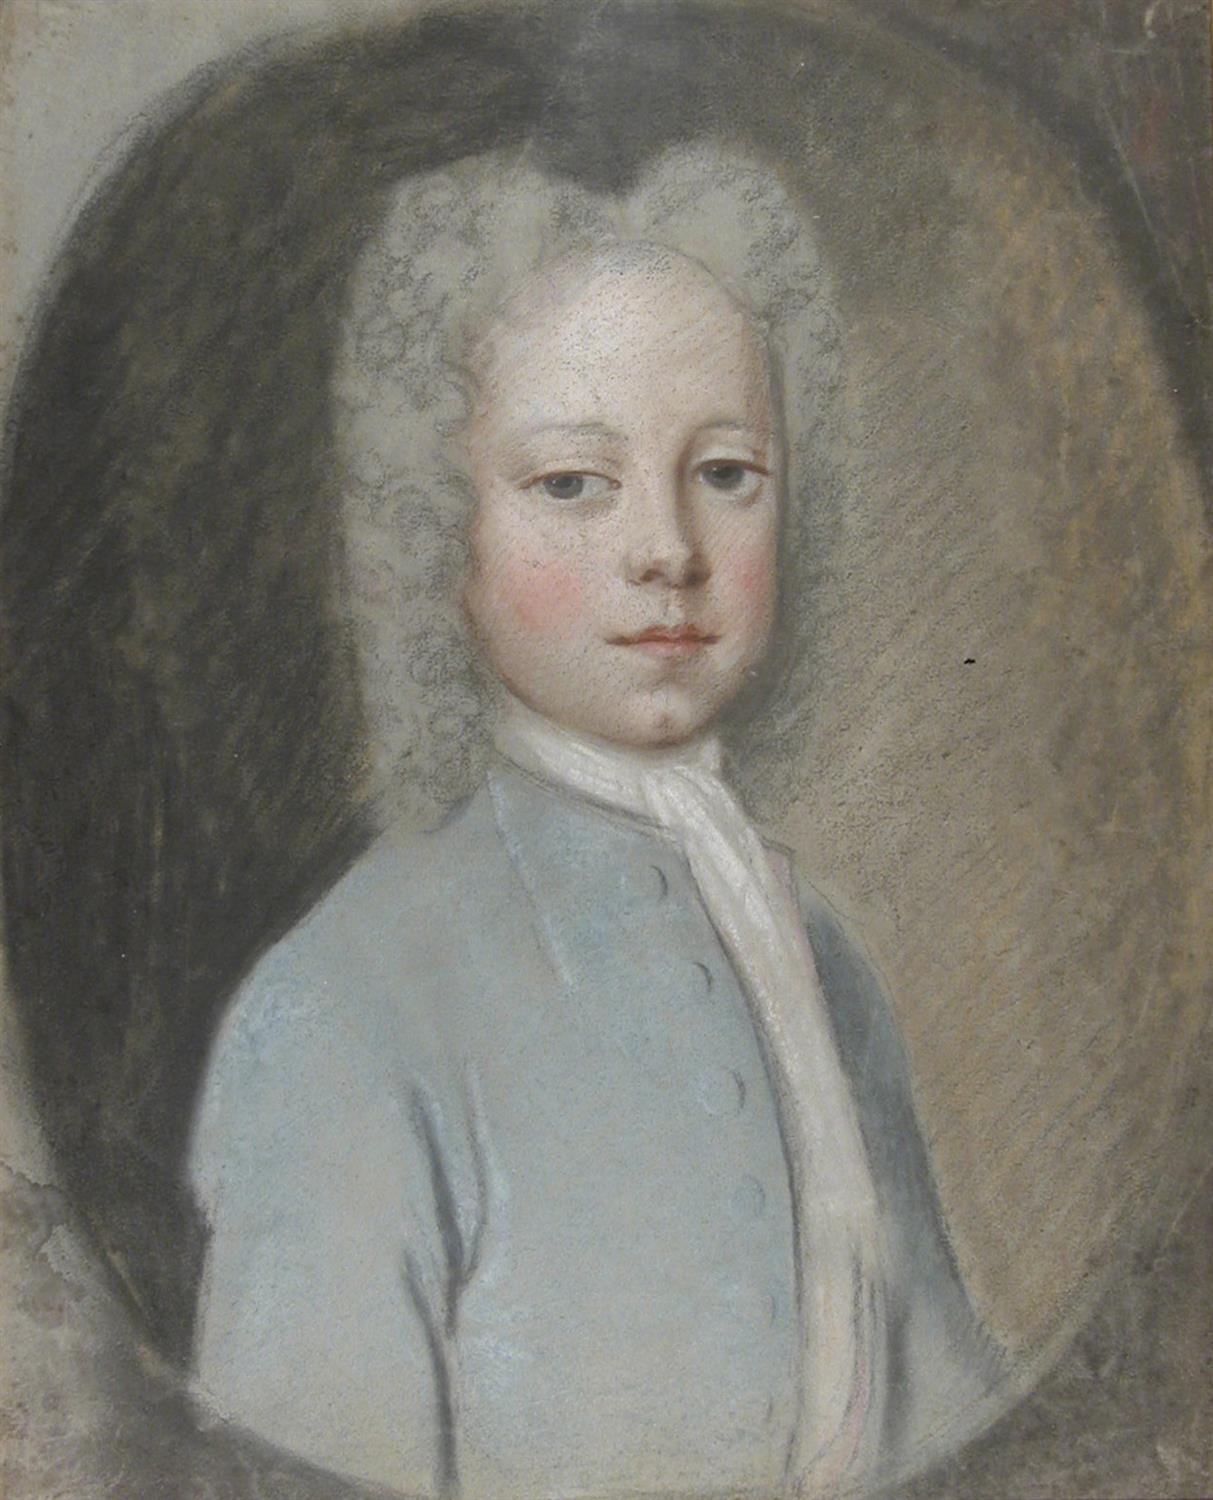 Portrait of Horace Walpole, age 10, shown half-length, in a long powdered wig, cravat, and blue velvet coat.